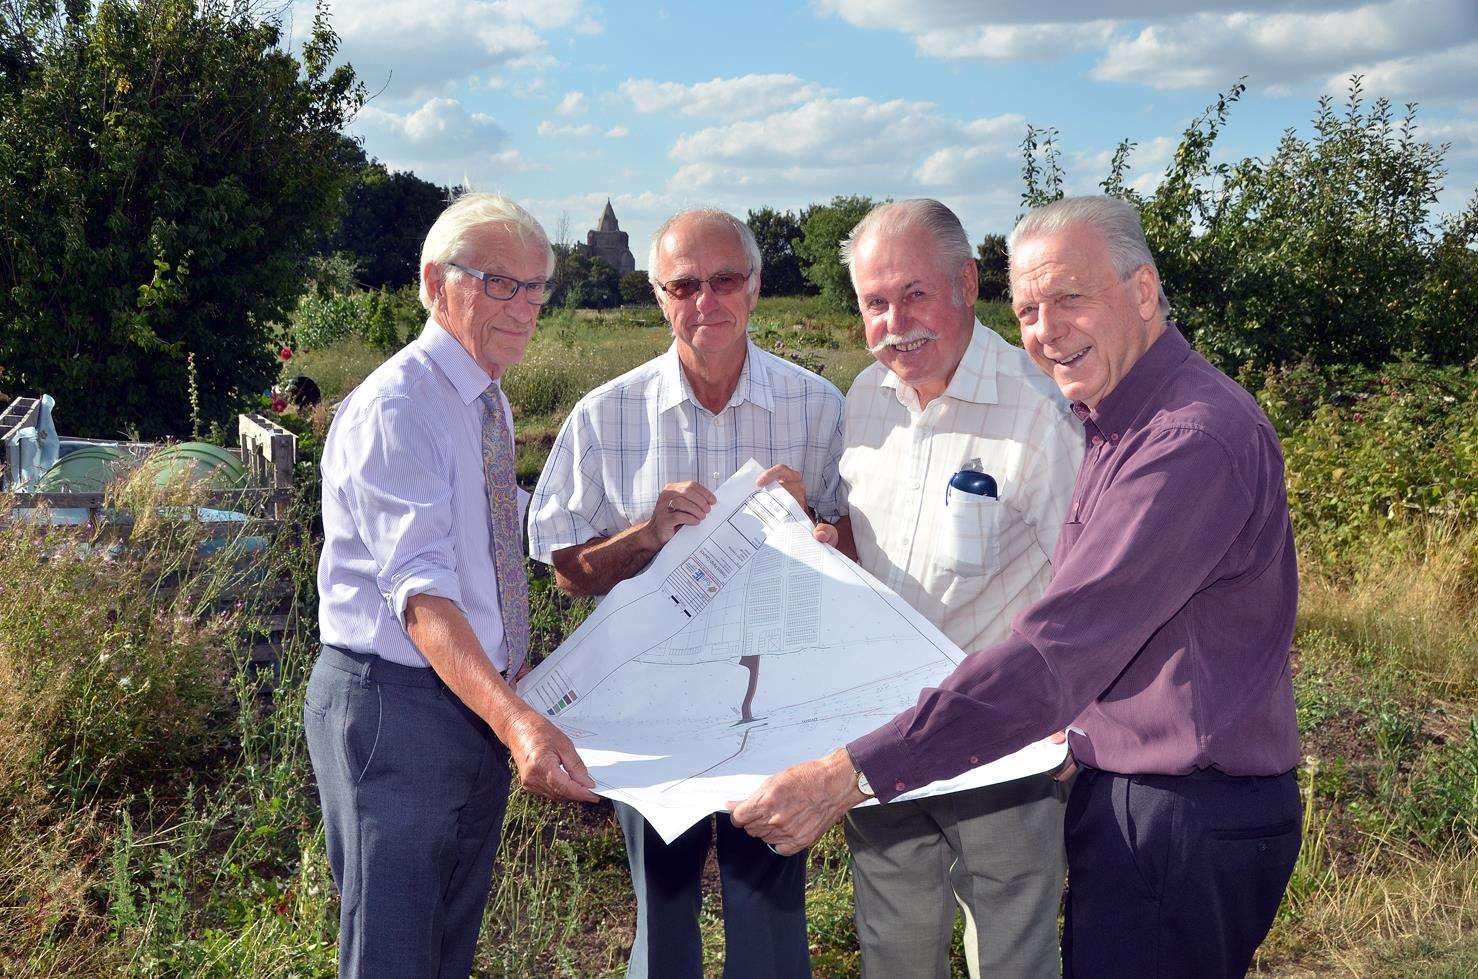 Couns Bryan Alcock, Peter Haselgrove, Reg Boot and David Ringham look at plans forCrowland's new allotments site in James Road.Photo (TIM WILSON): 020818139SG